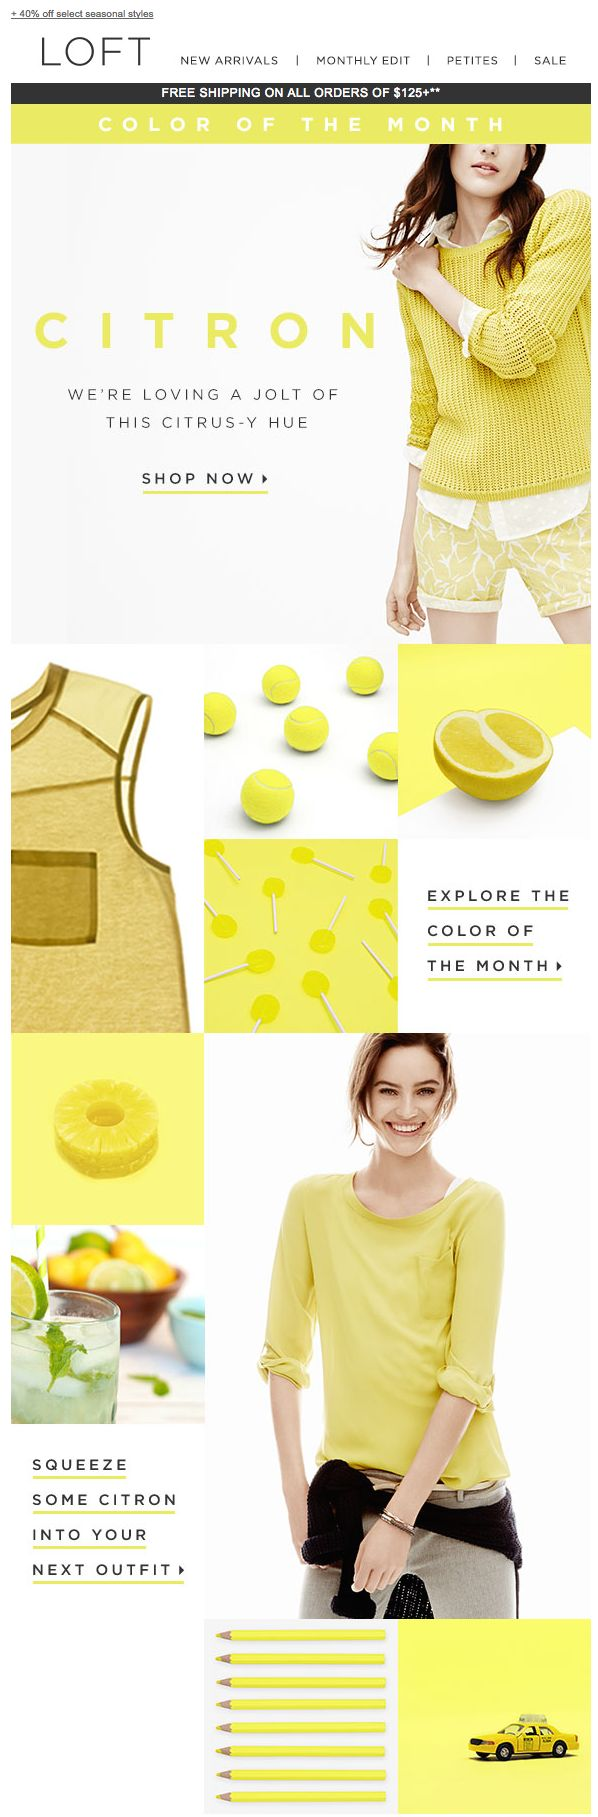 LOFT: Introducing the Color of the Month